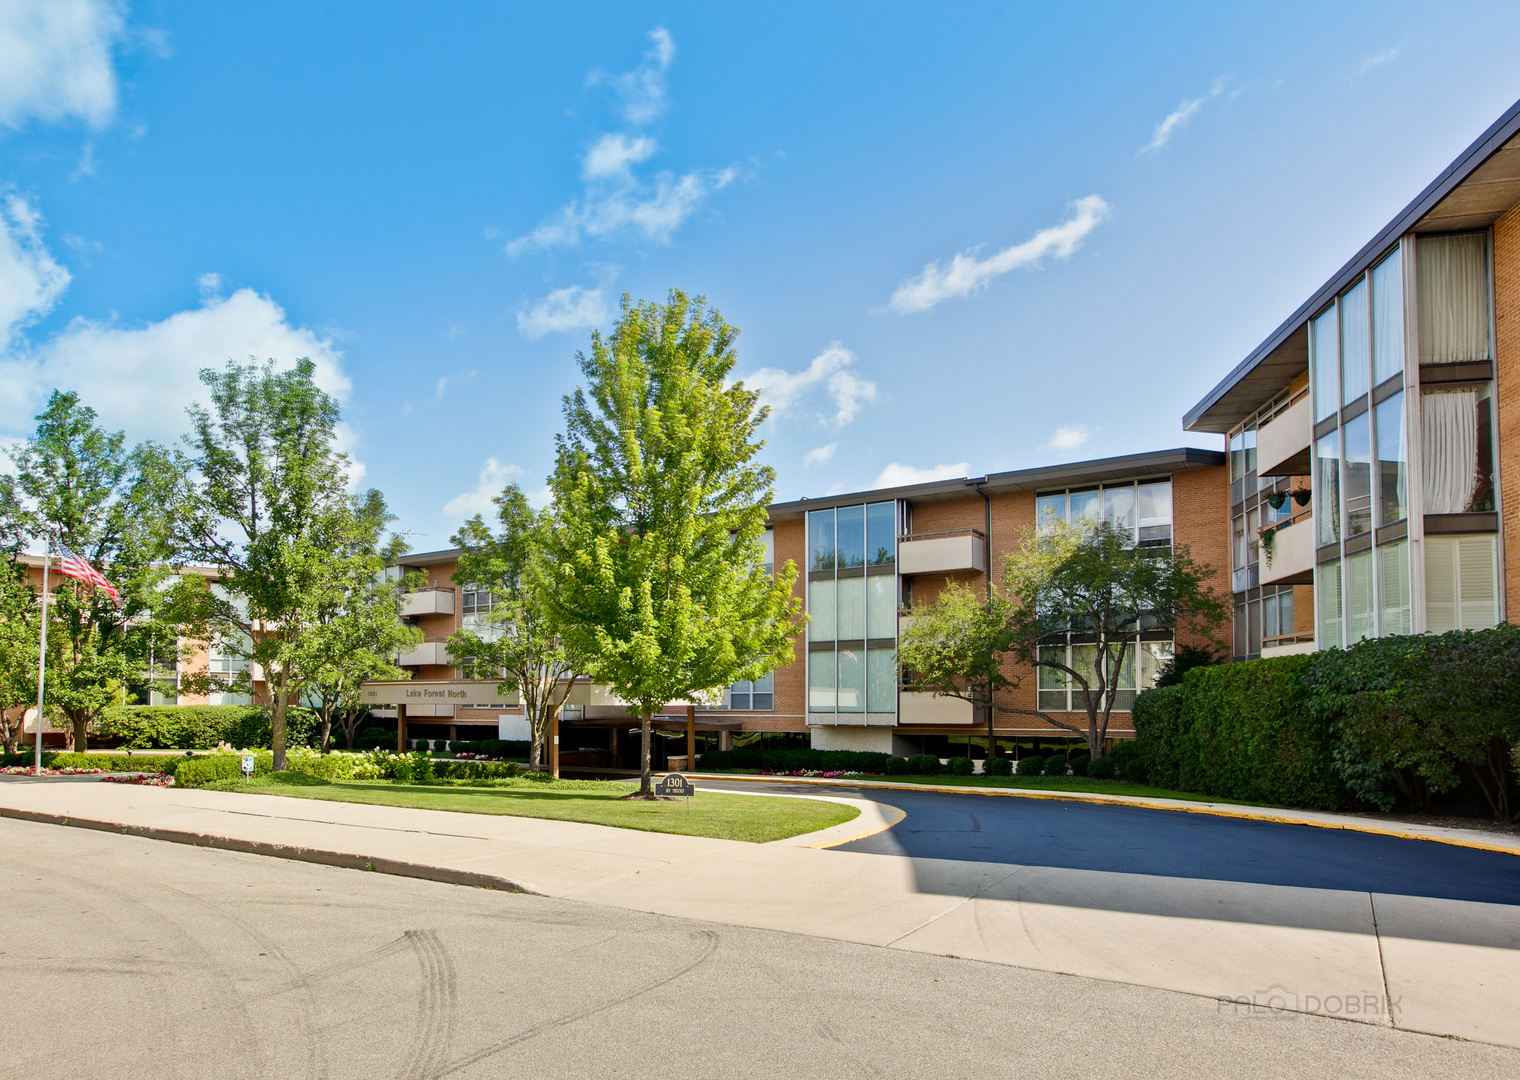 1301 North Western 101, Lake Forest, Illinois, 60045